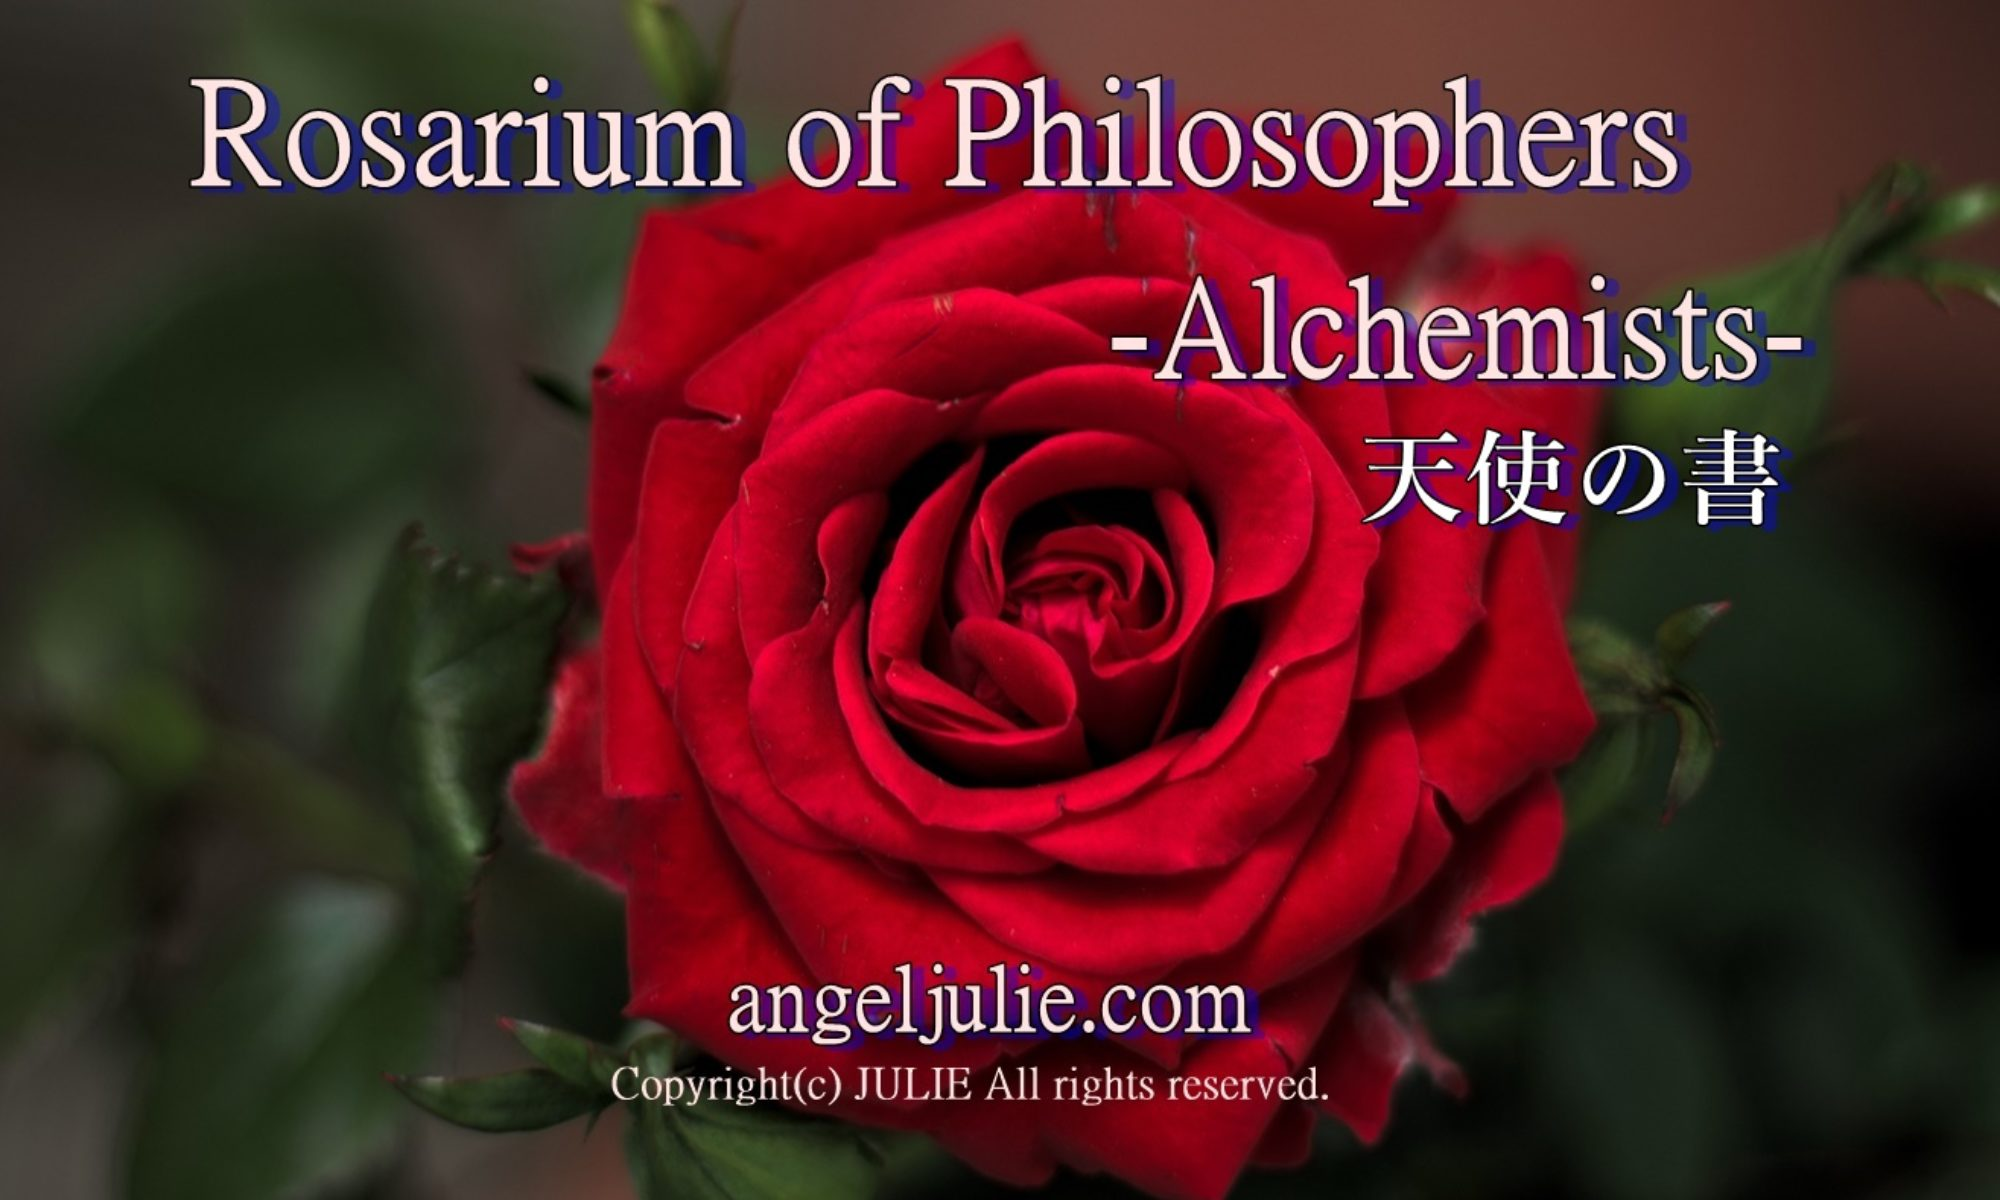 Rosarium of Philosophers -Alchemists - Follow my heart by Angel Julie | The Book of Angels